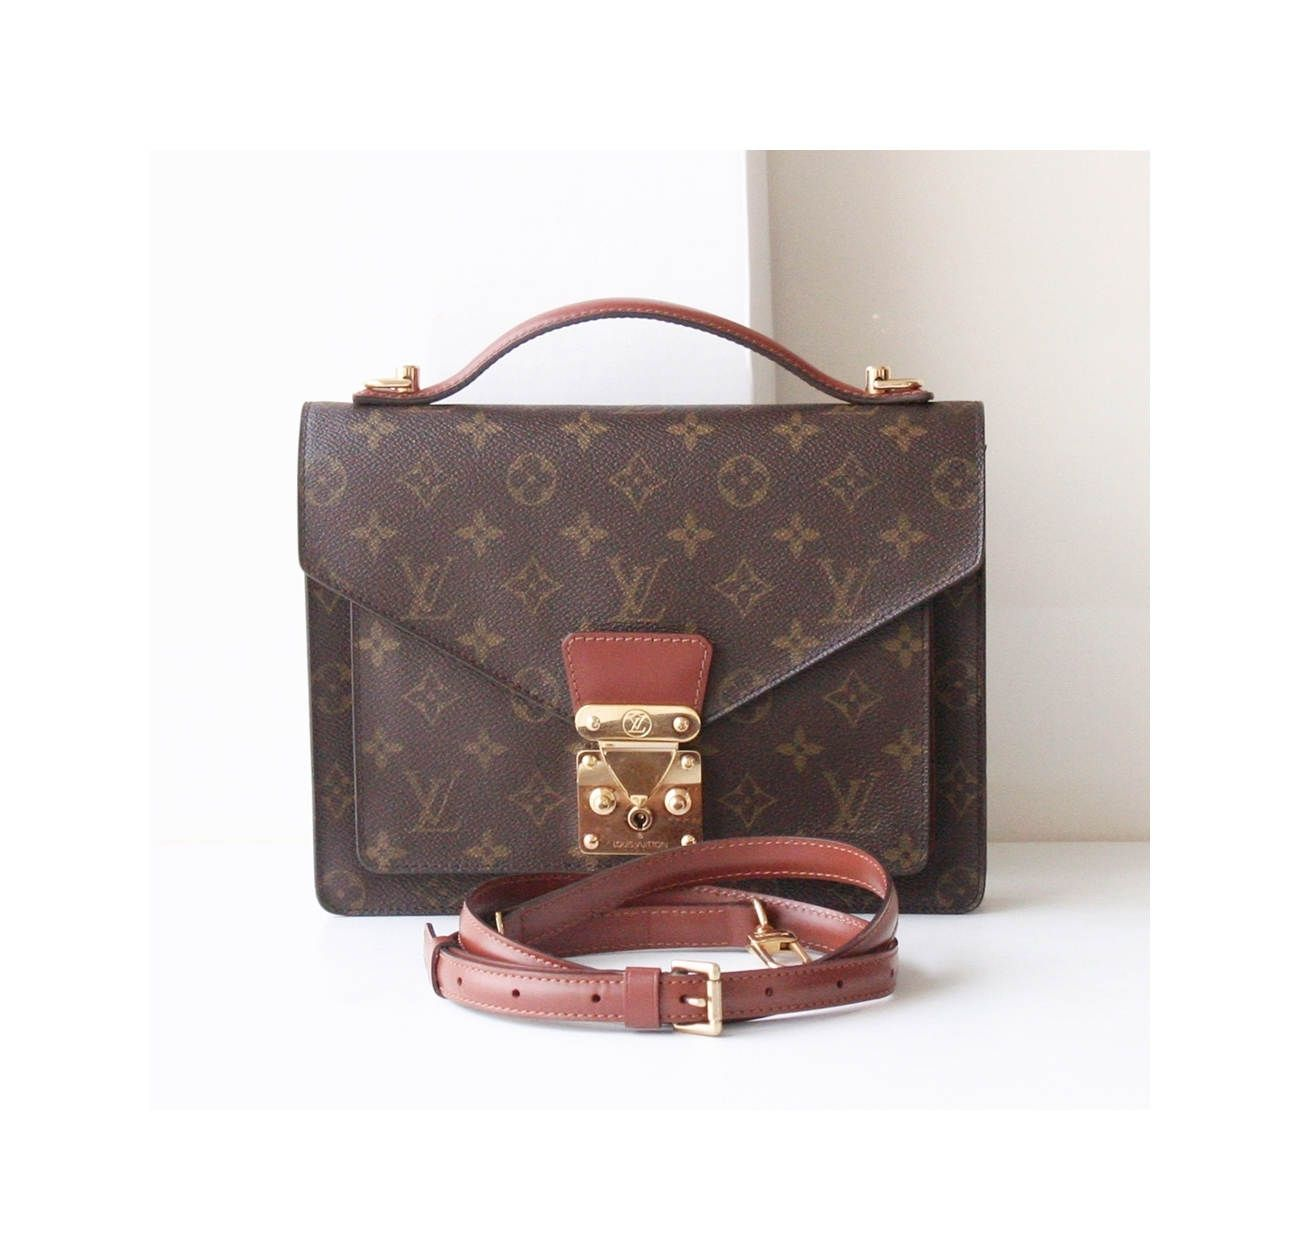 dbb4be6f347a Louis Vuitton Monogram Monceau Bag Authentic Vintage Brown handbag by hfvin  on Etsy  louisvuitton  lv  monceau  monogram  brown  handbag  hfvin